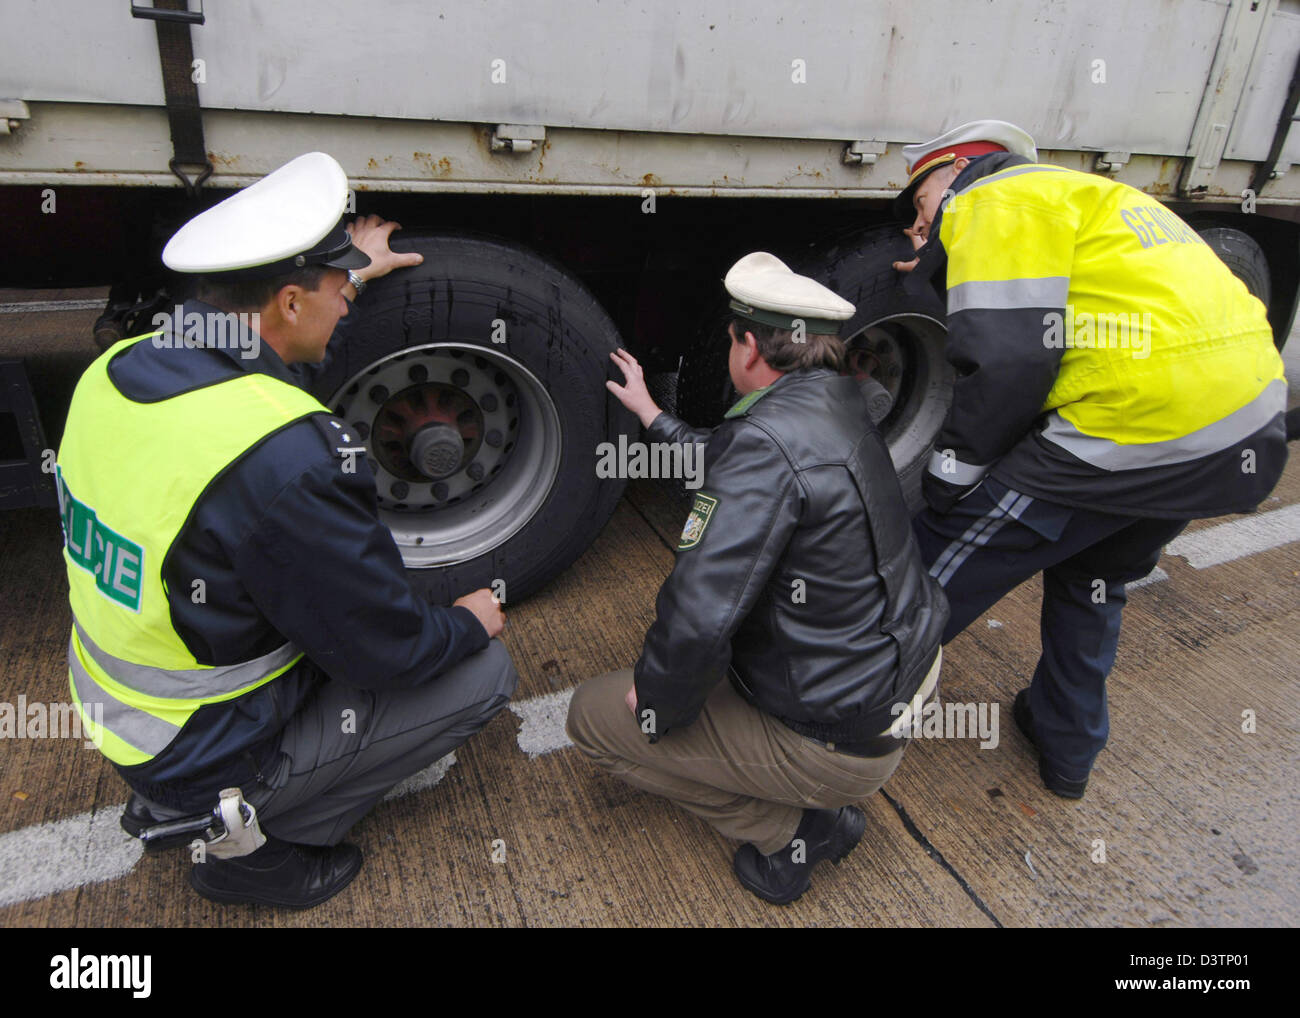 Police officers from (L-R) Czech Republic, Germany and Austria inspect a truck on a autobahn A3 rest area near Ruhstorf, - Stock Image